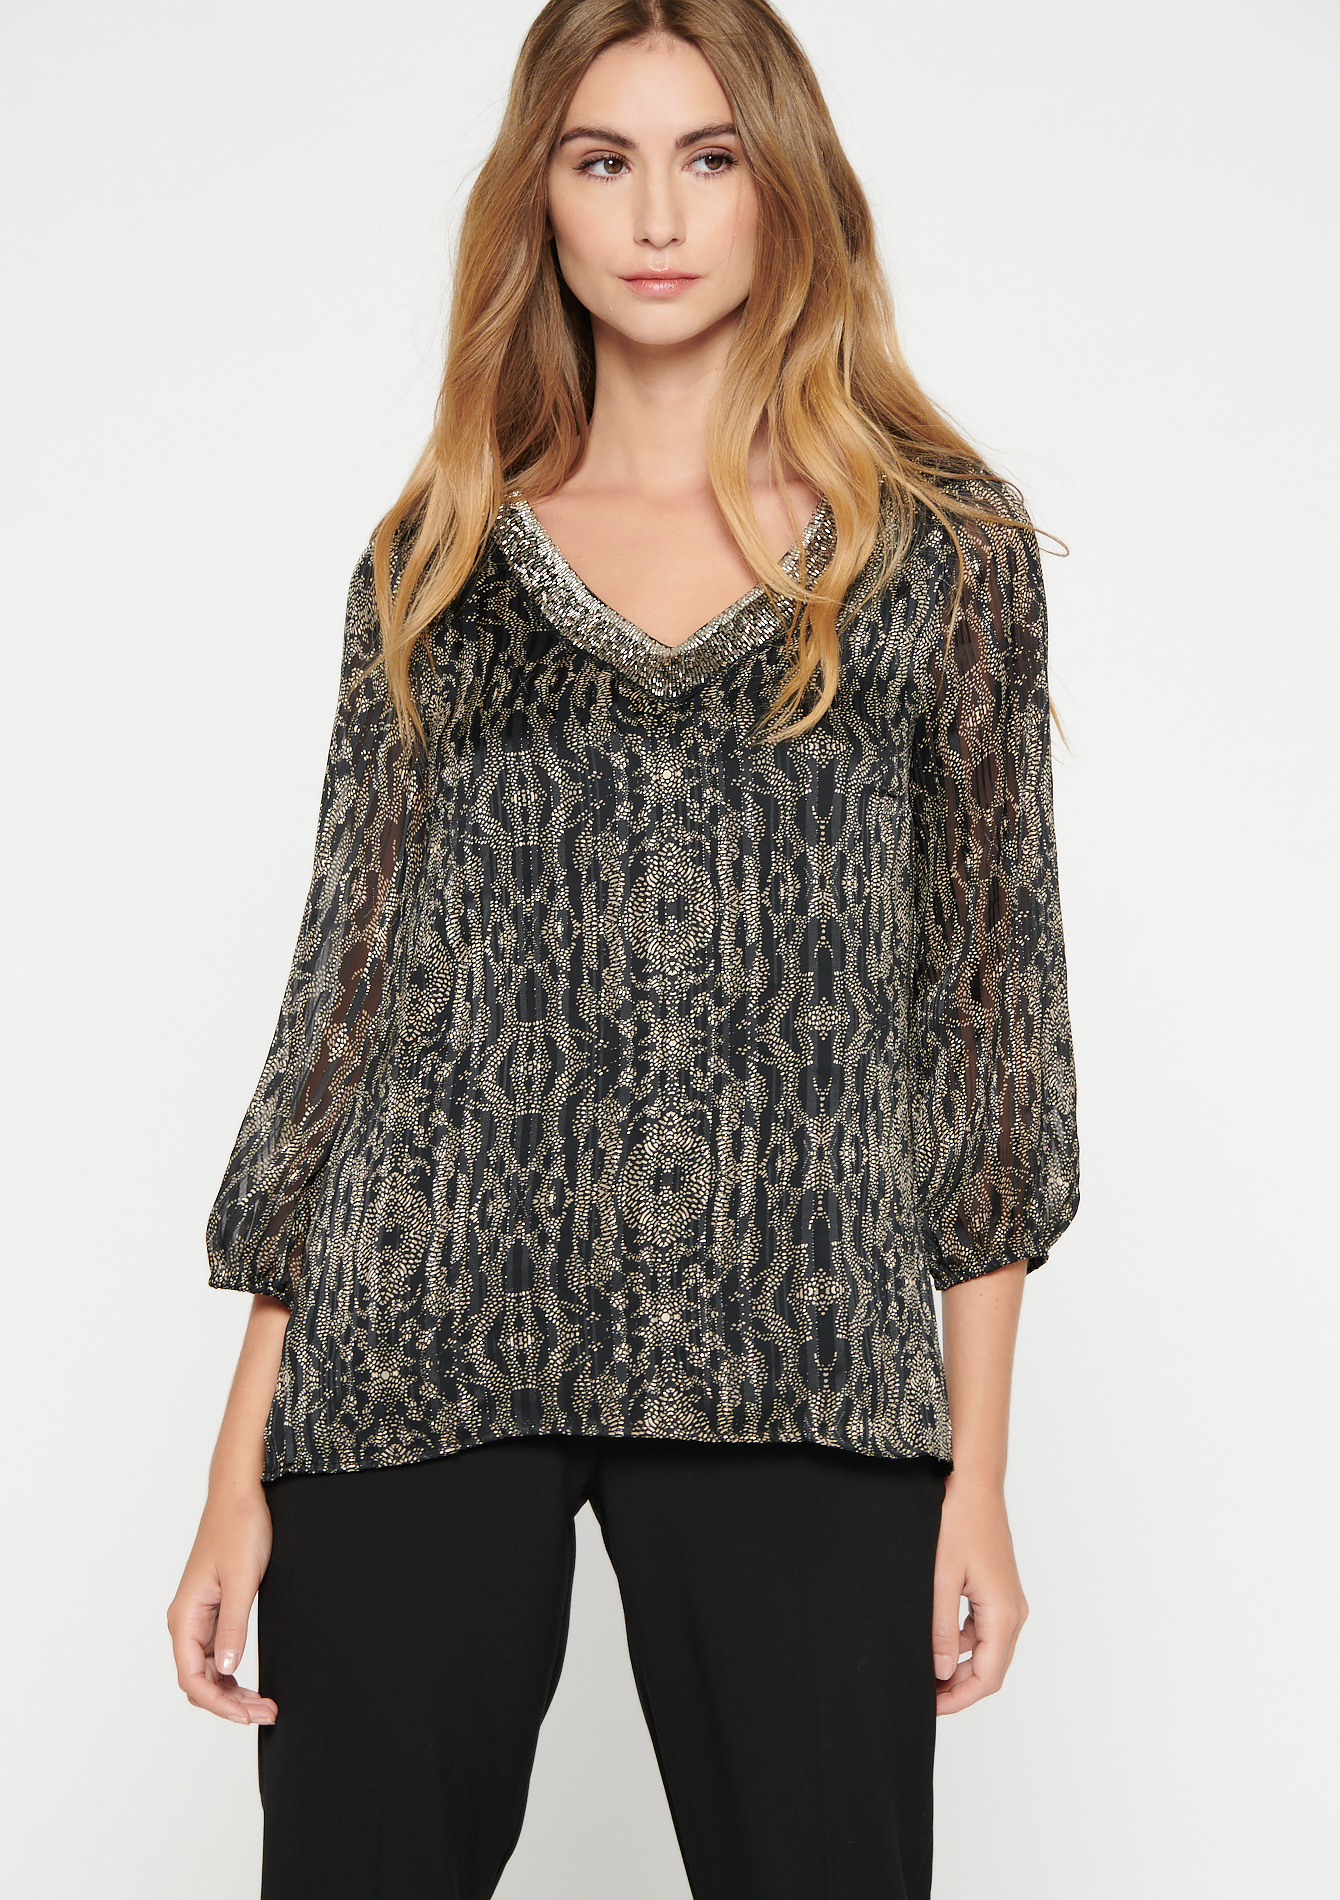 Blouse with print and trimmed neckline - BLACK - 05701543_1119